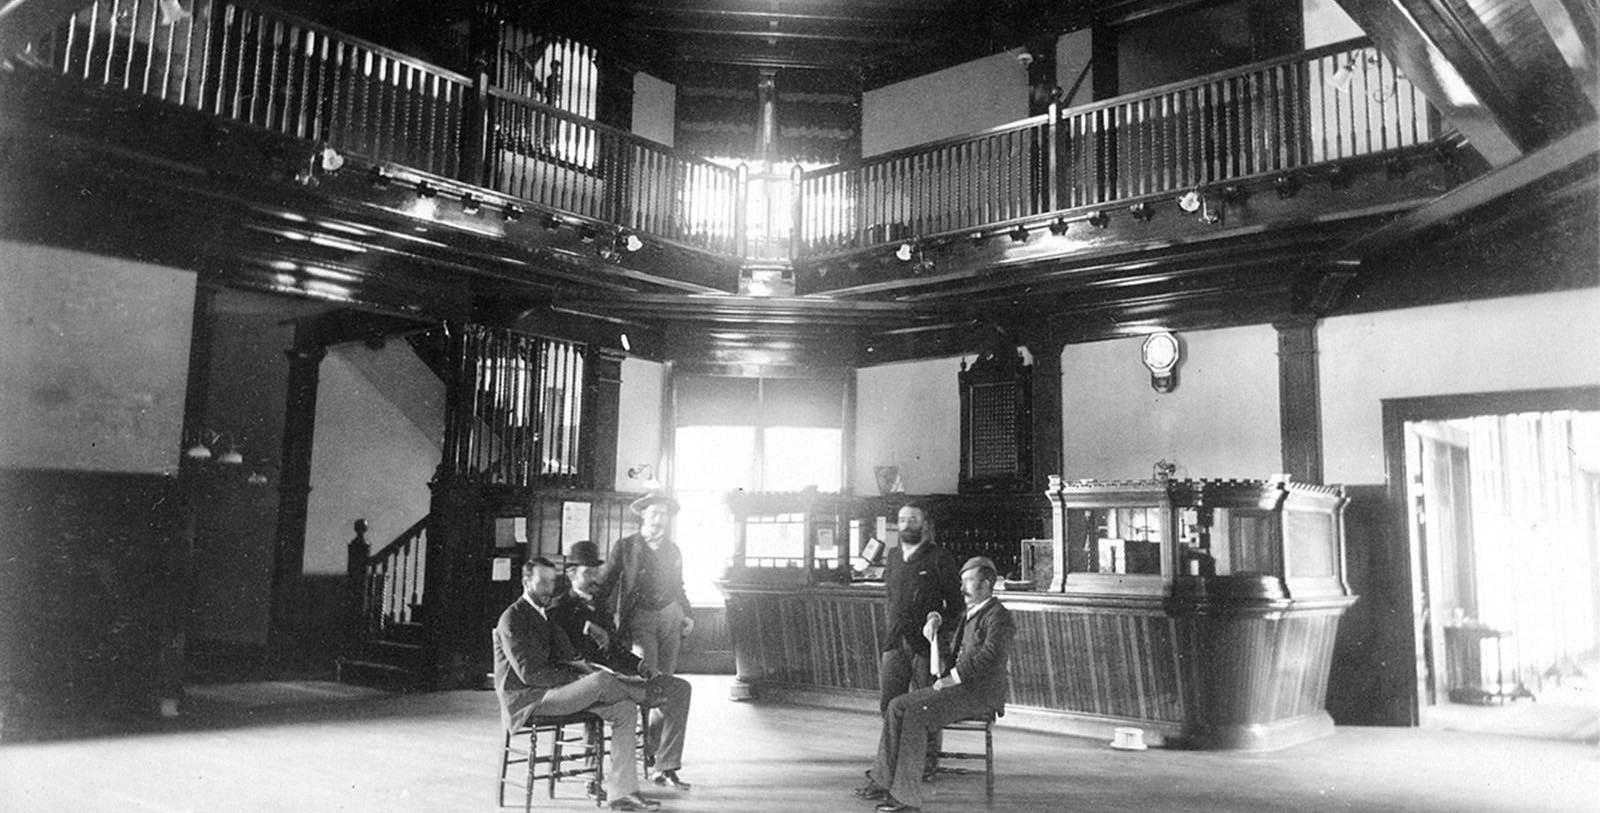 Historic image of hotel interior Fairmont Banff Springs, 1888, Member of Historic Hotels Worldwide, in Banff, Alberta, Canada, Discover